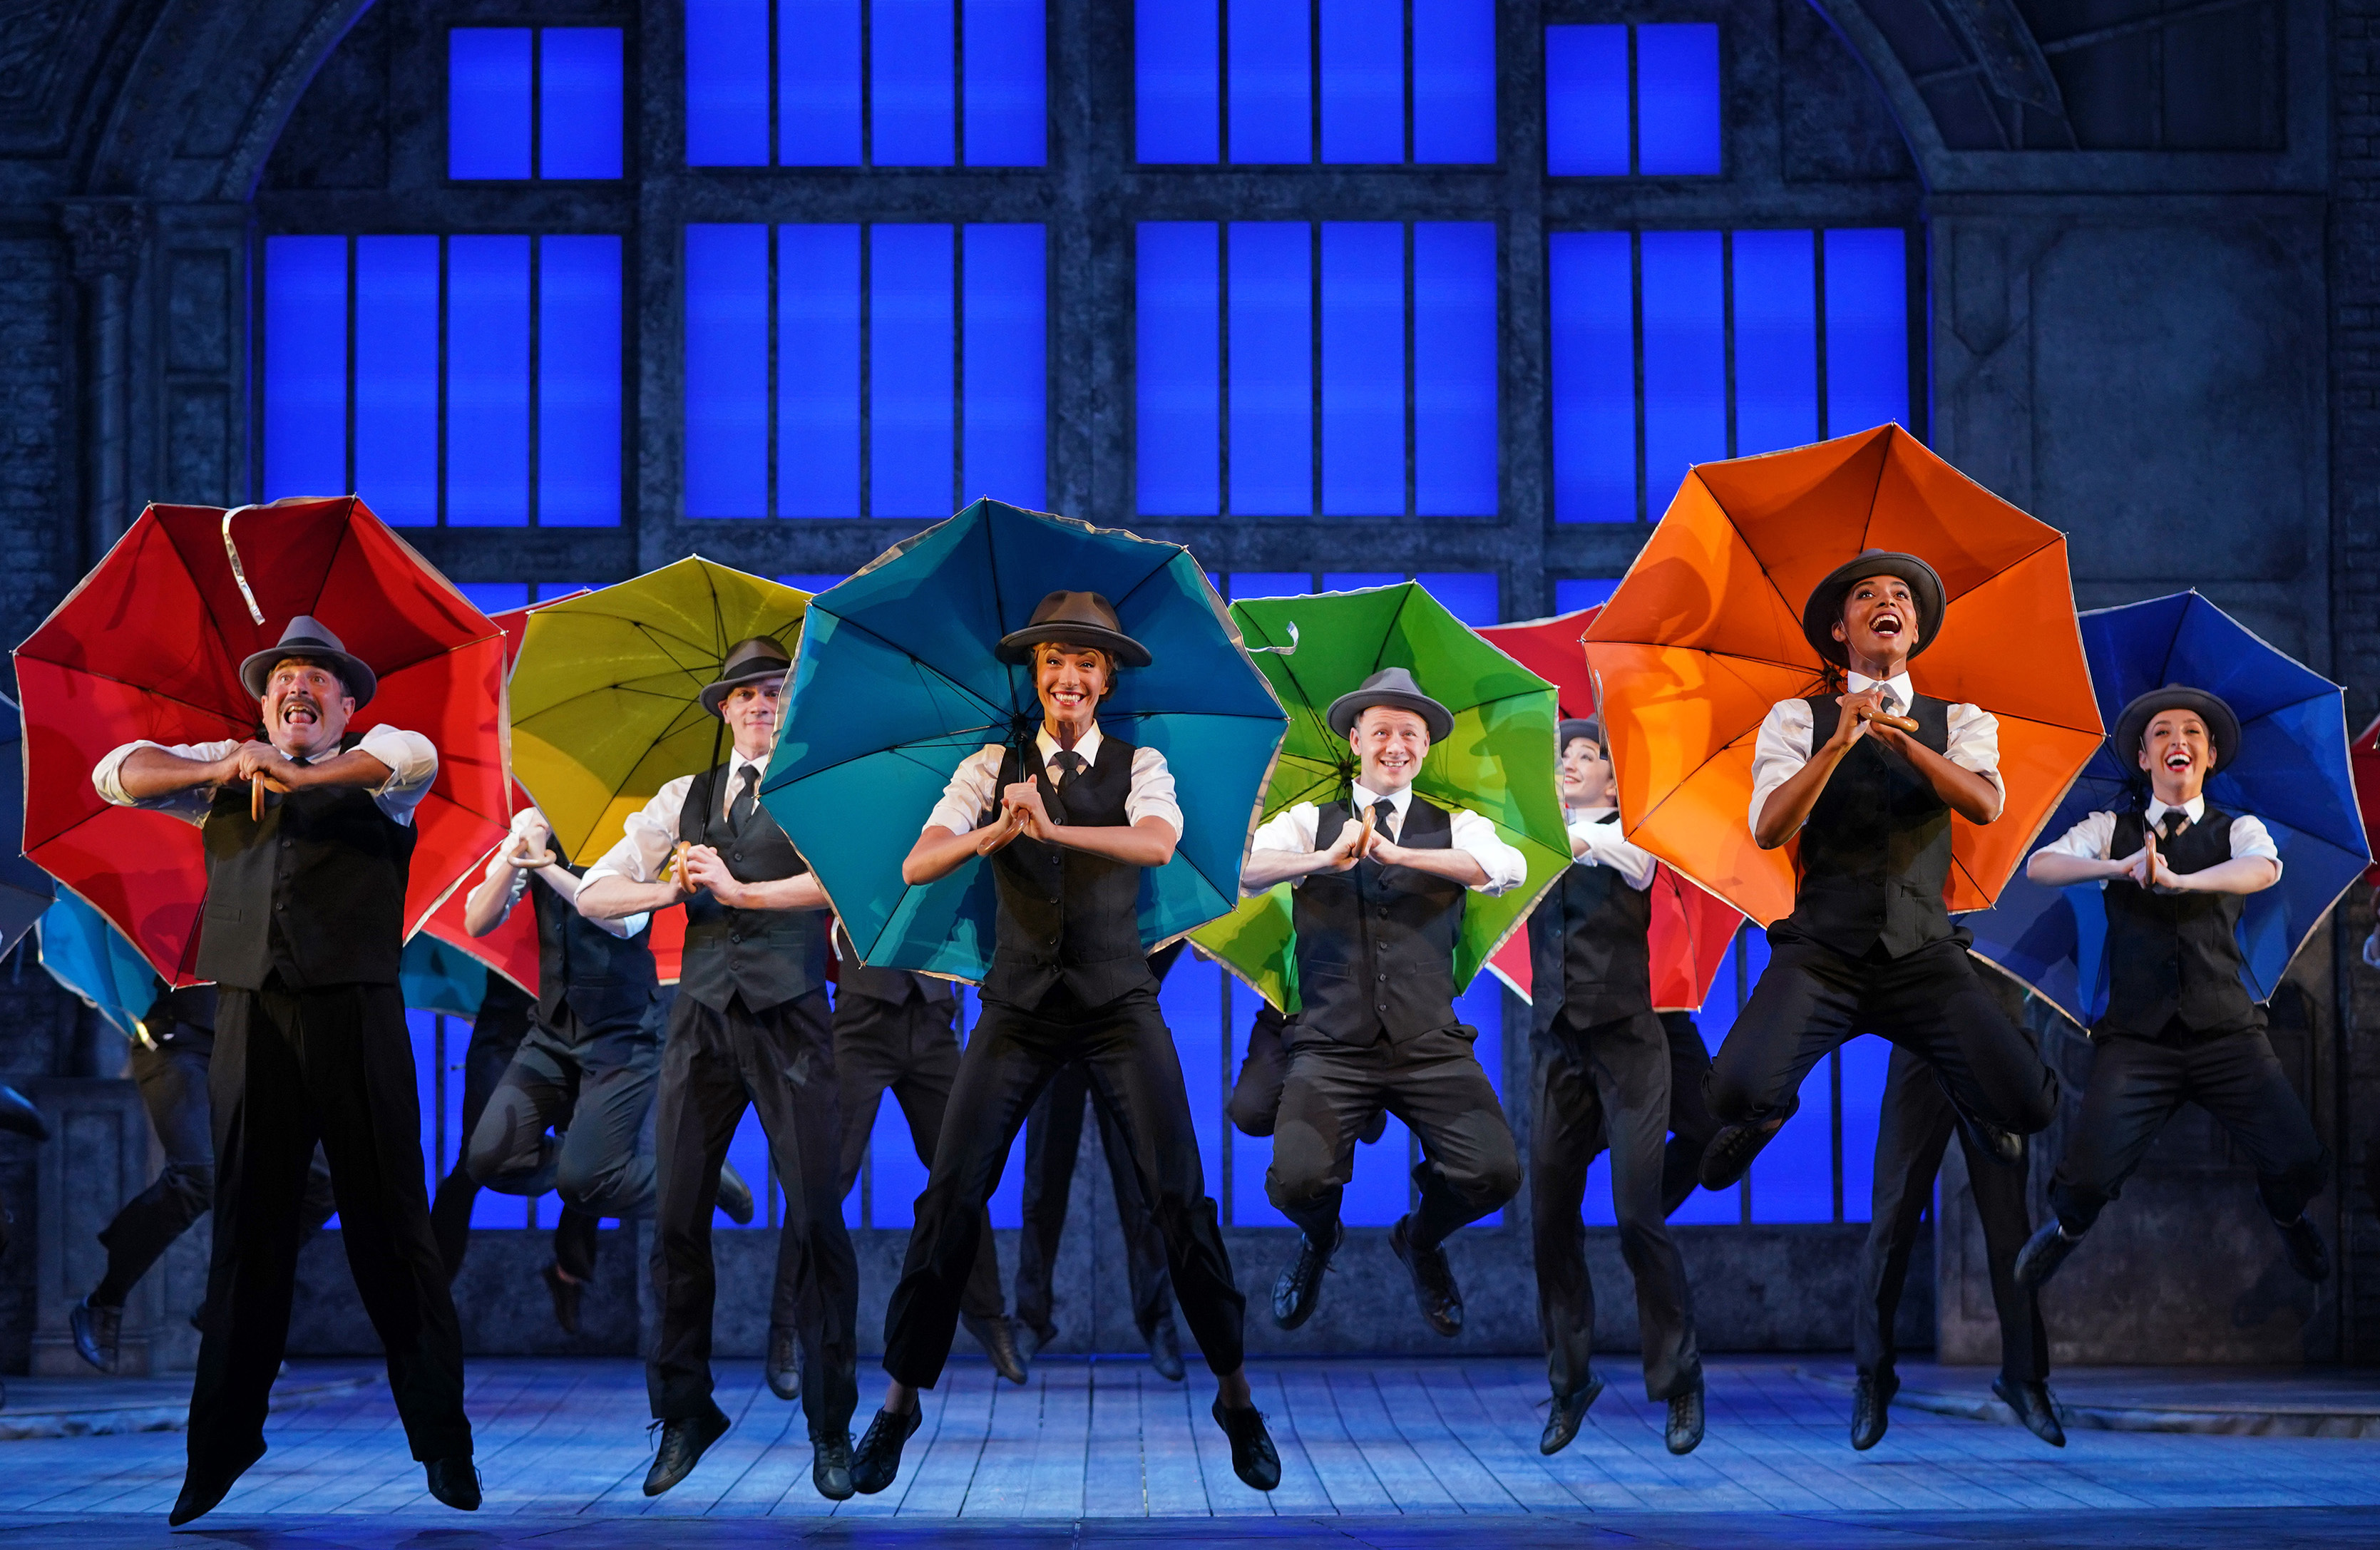 <p>Cast members, including (left to right) Adam Cooper (2nd left, yellow umbrella), Charlotte Gooch (centre, blue umbrella) and Kevin Clifton (4th right, green umbrella) at the rehearsals for Singin' in the Rain, before it re-opens later this week at Sadlers Wells Theatre in London. Picture date: Tuesday August 3, 2021.</p>